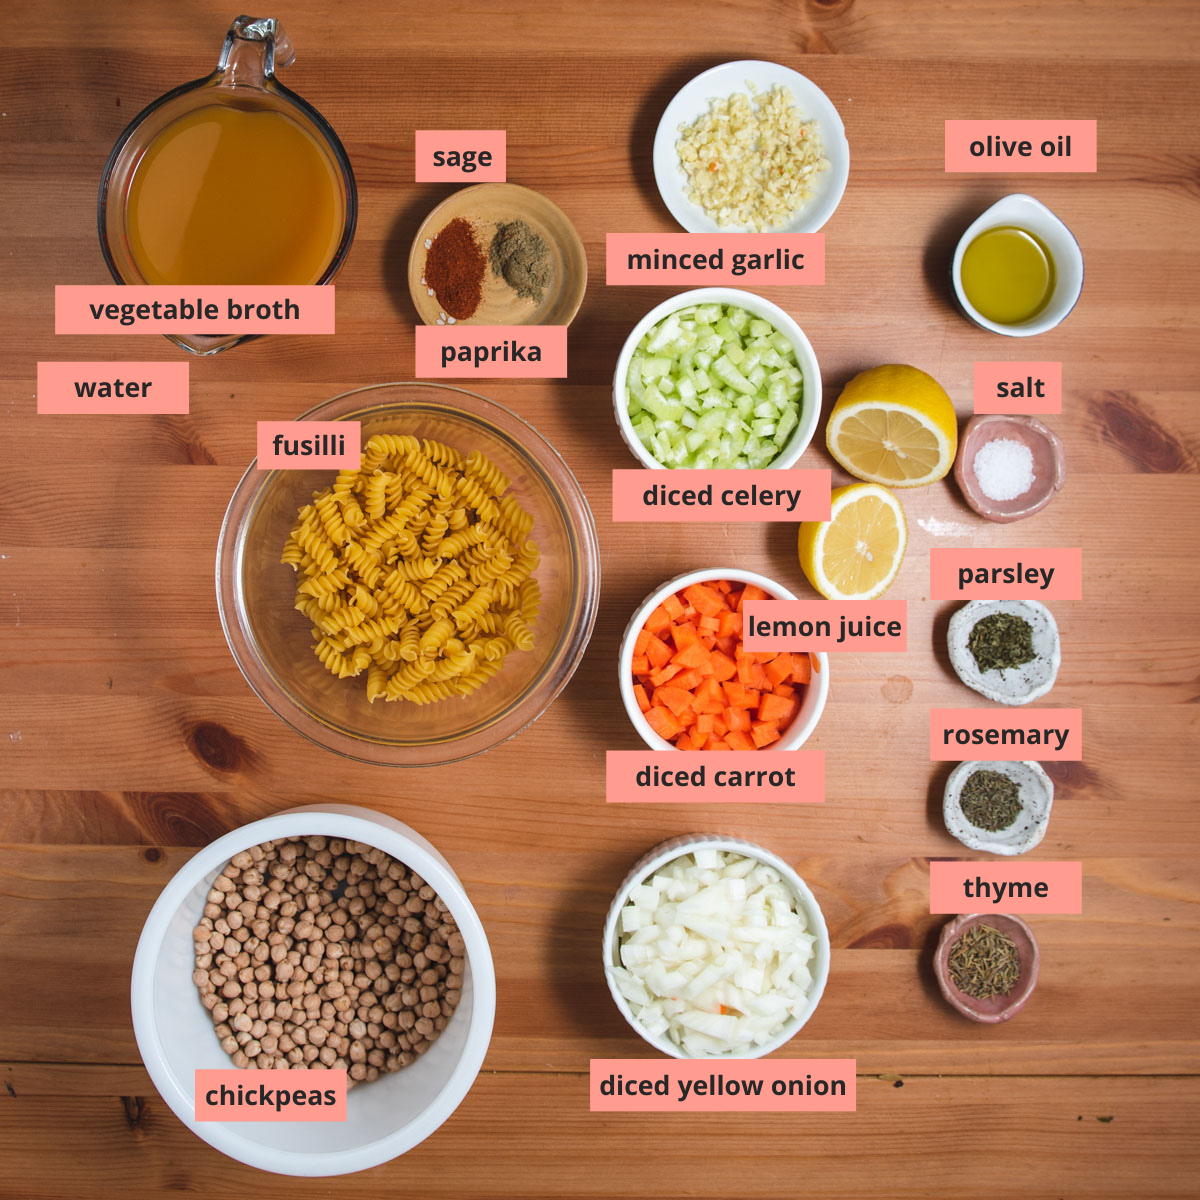 Labeled ingredients used to make chickpea soup